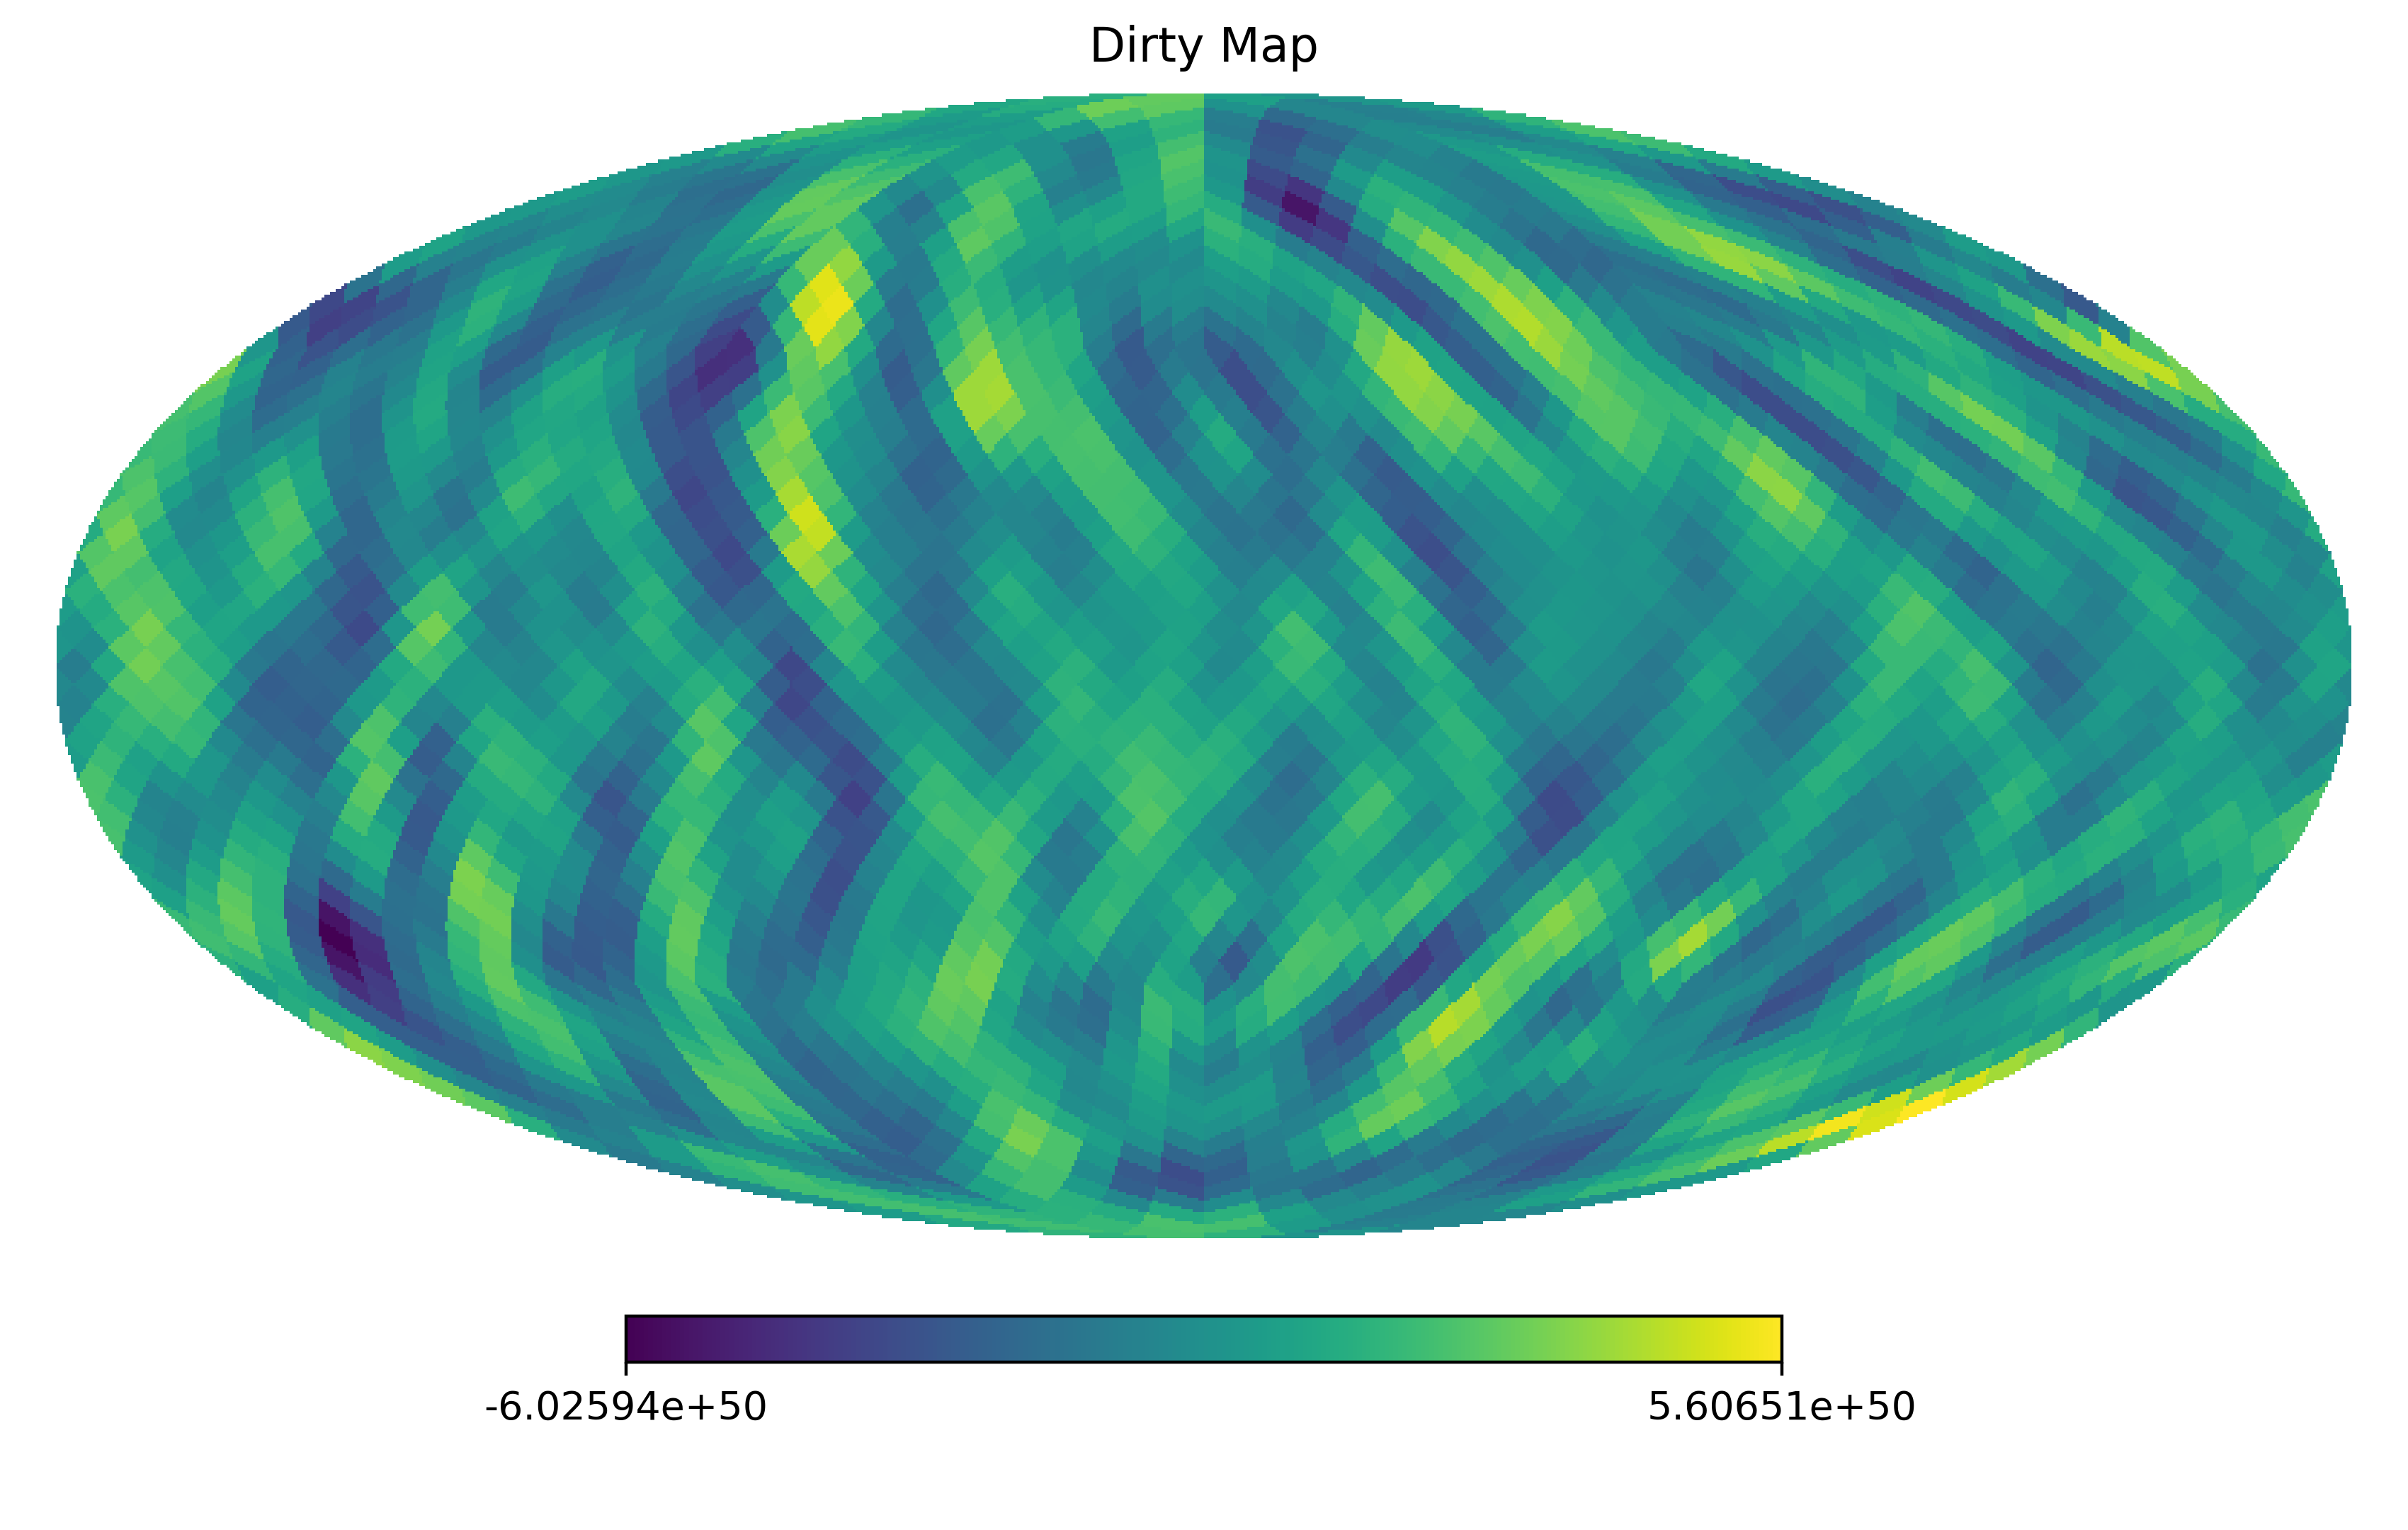 The top left map is broadband dirty map from simulated data, the top right map shows the injected sources. The bottom left map is the dirty map made from simulated data including the injections. The bottom right map is the clean map obtained by deconvolution of the (bottom left) dirty map including injections.